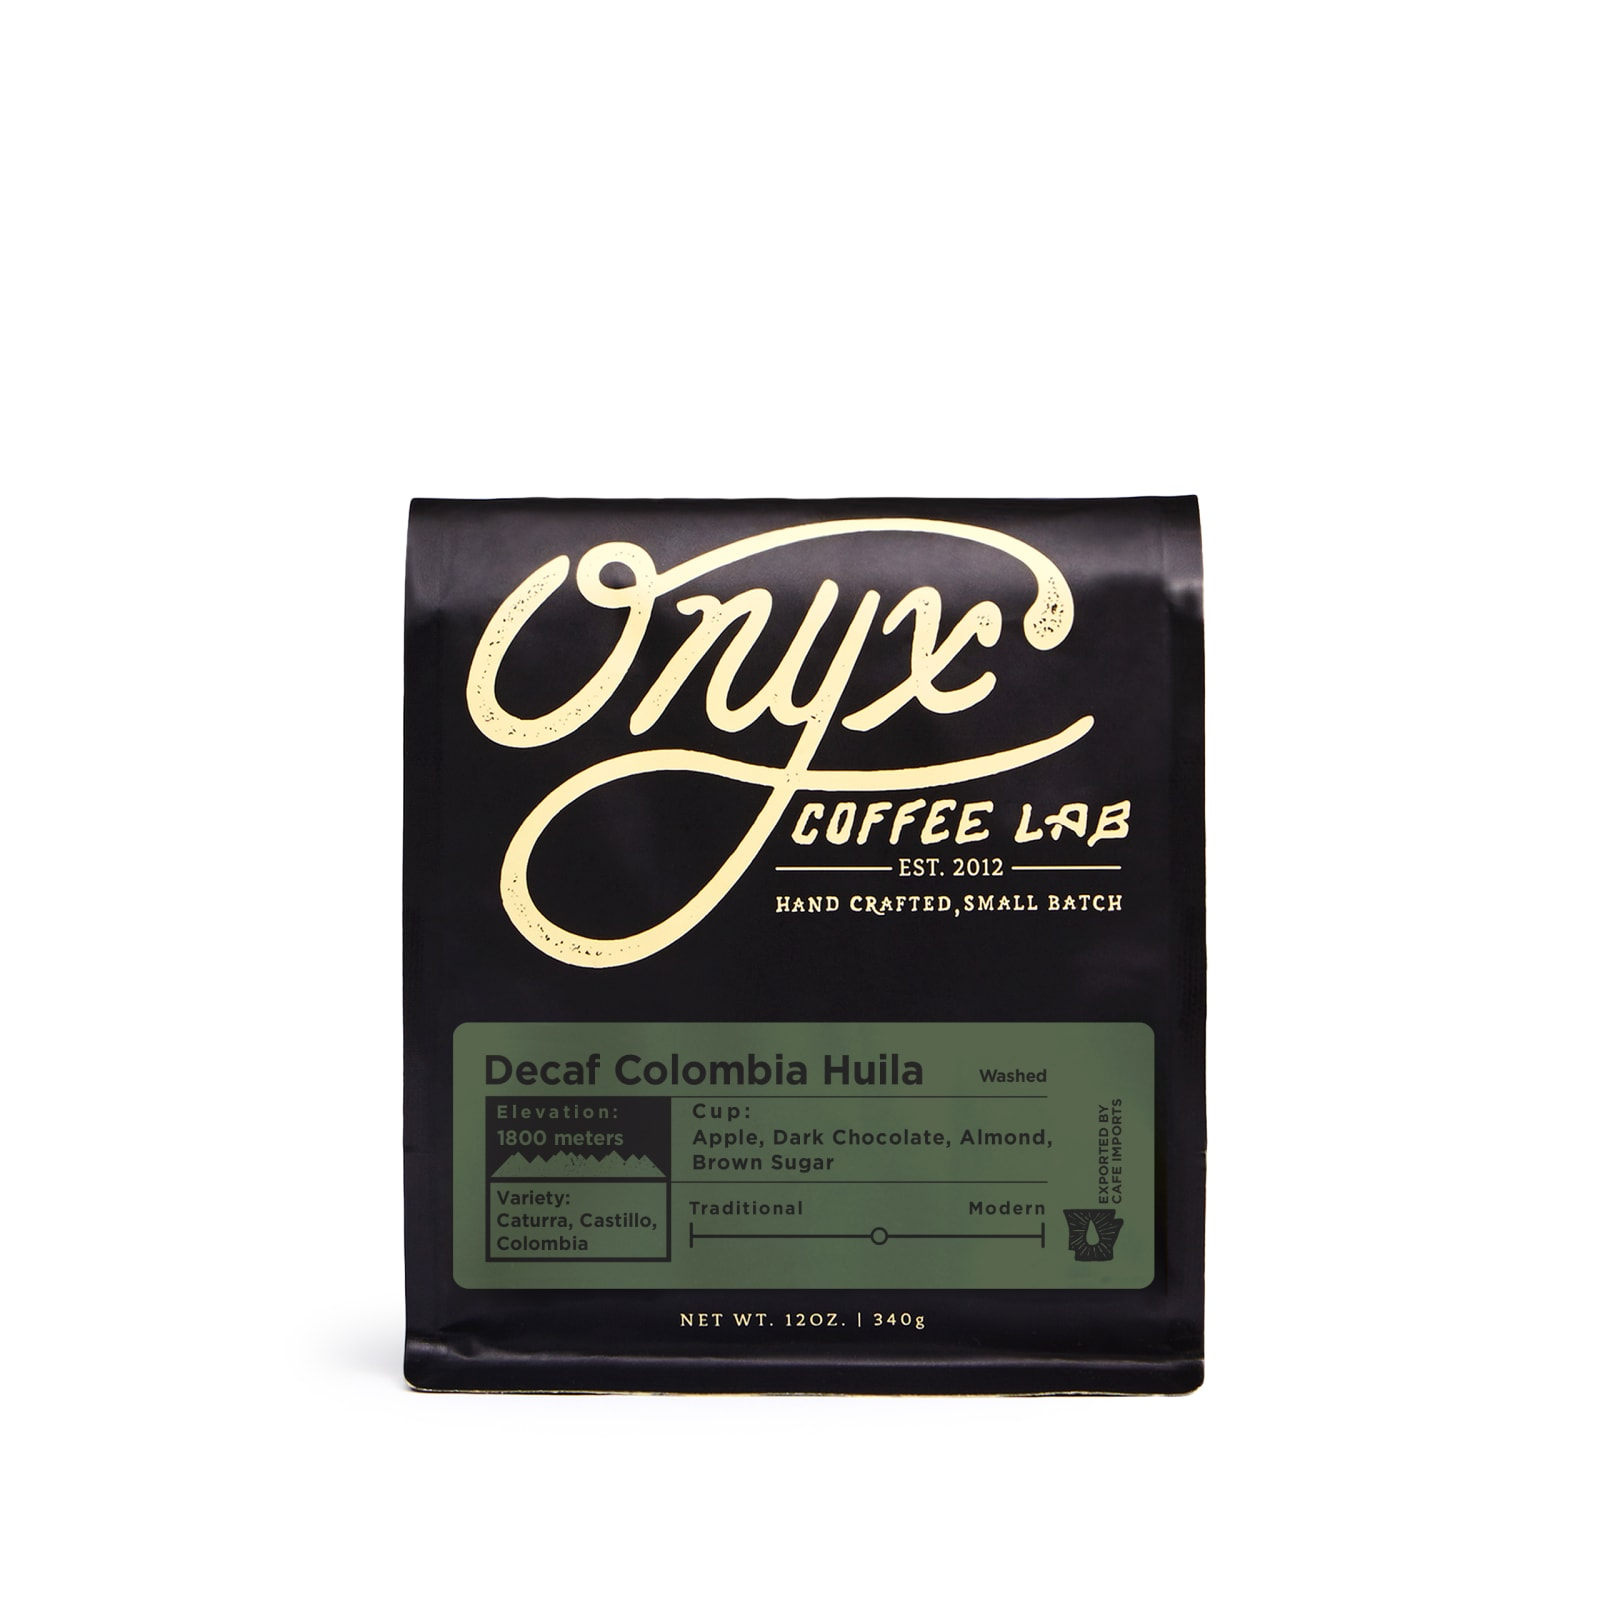 Decaf Colombia Huila